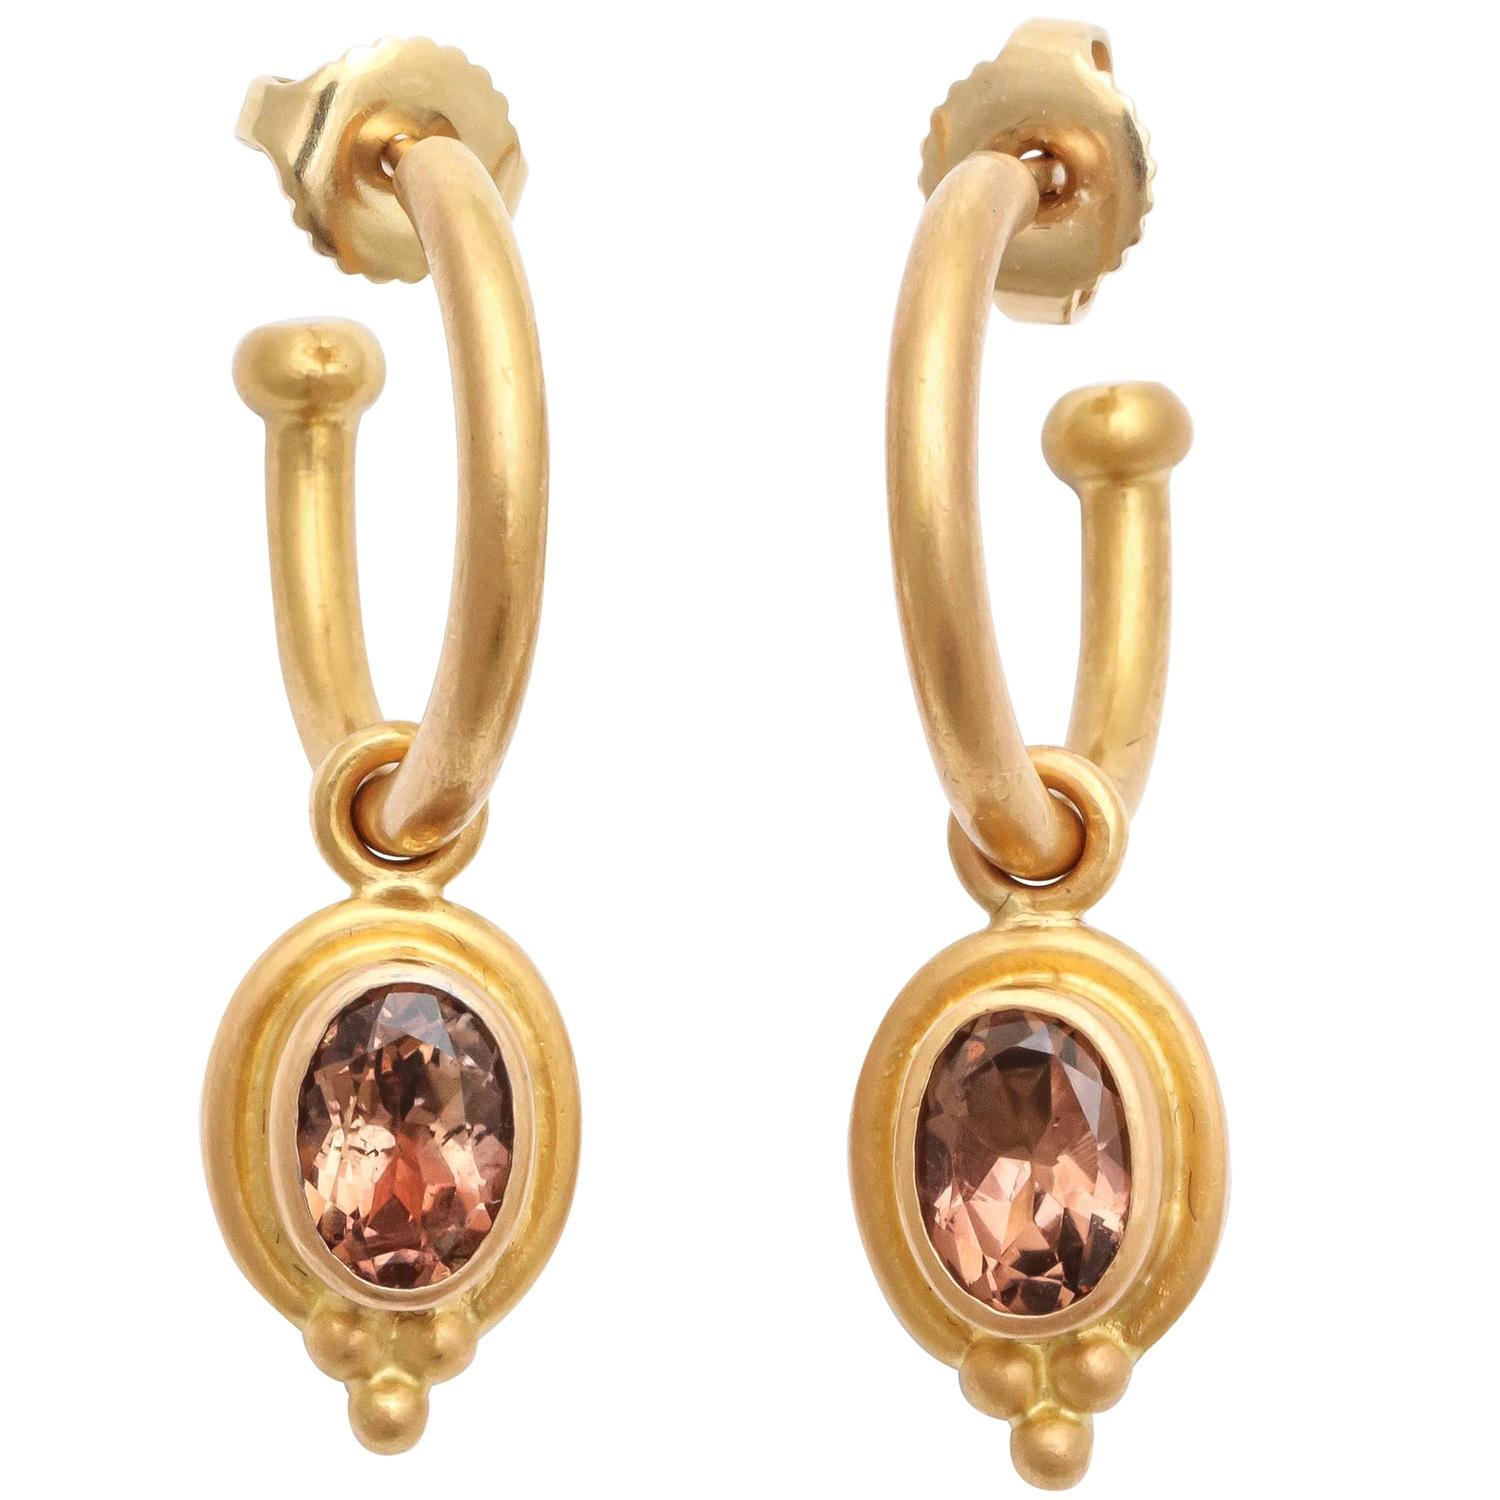 Reinstein Ross Gold Hoop Earrings with Removable Topaz Drops For